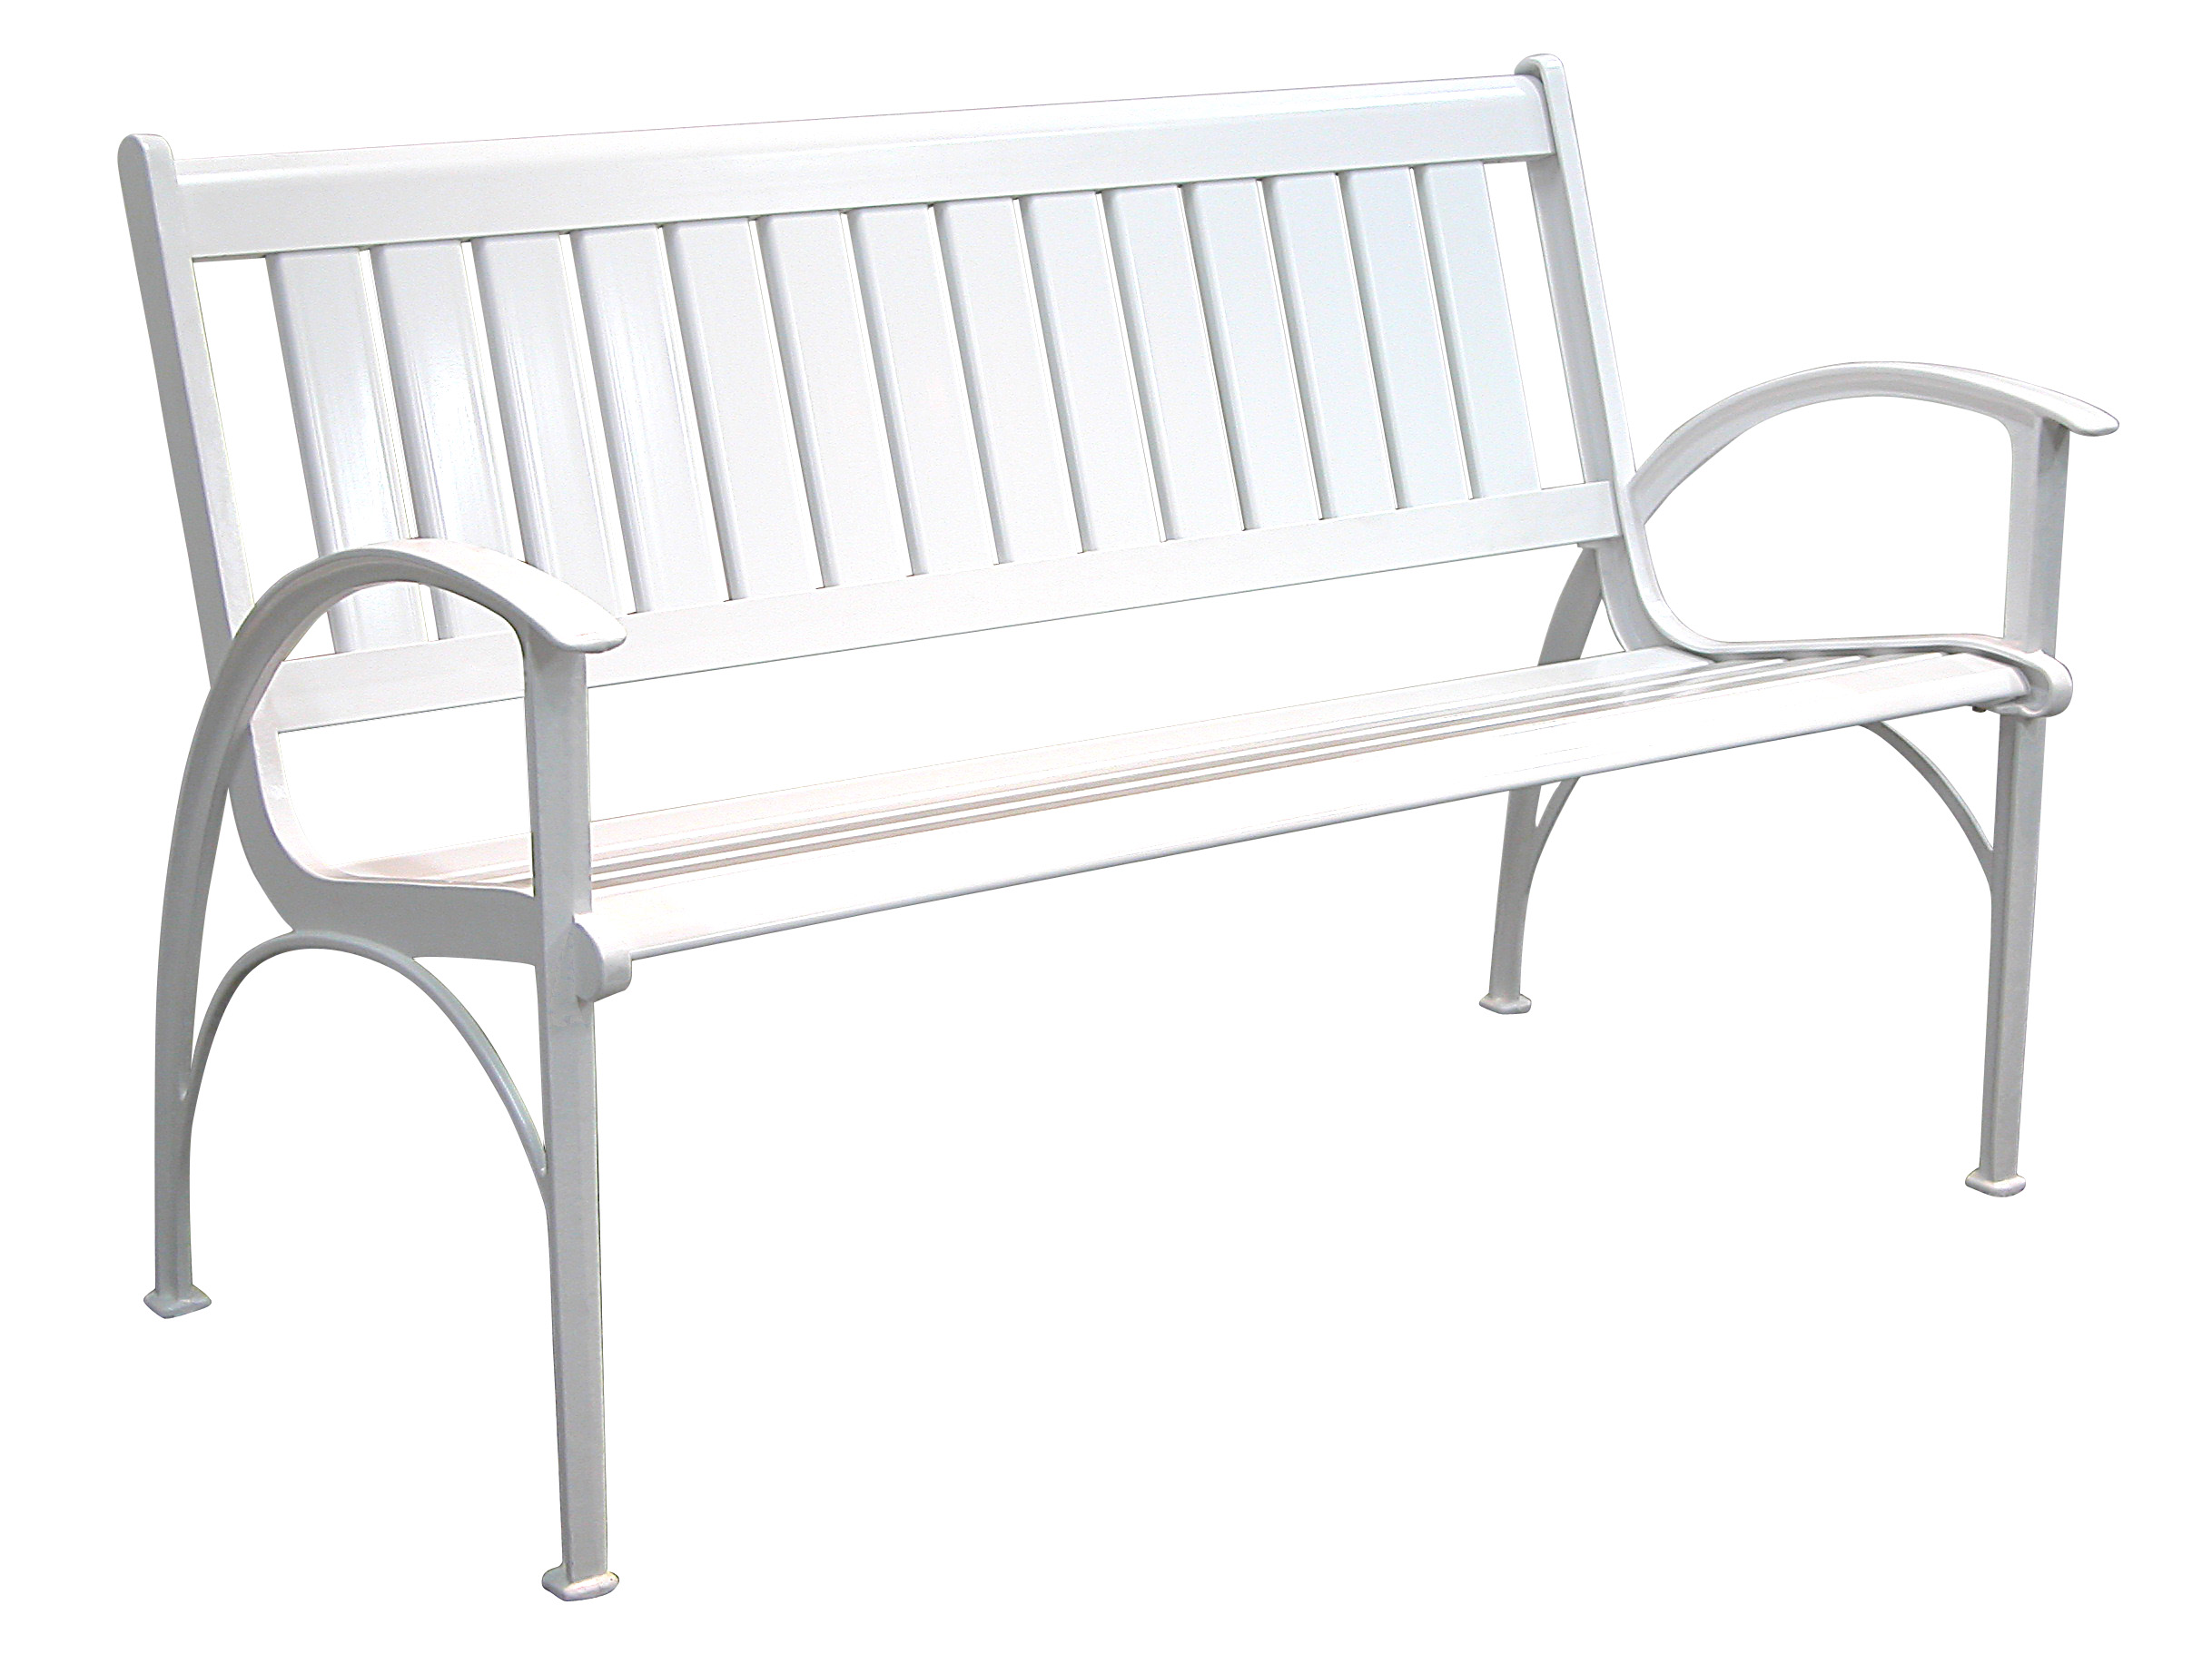 Patio Furniture Bench Contemporary Cast Aluminum White